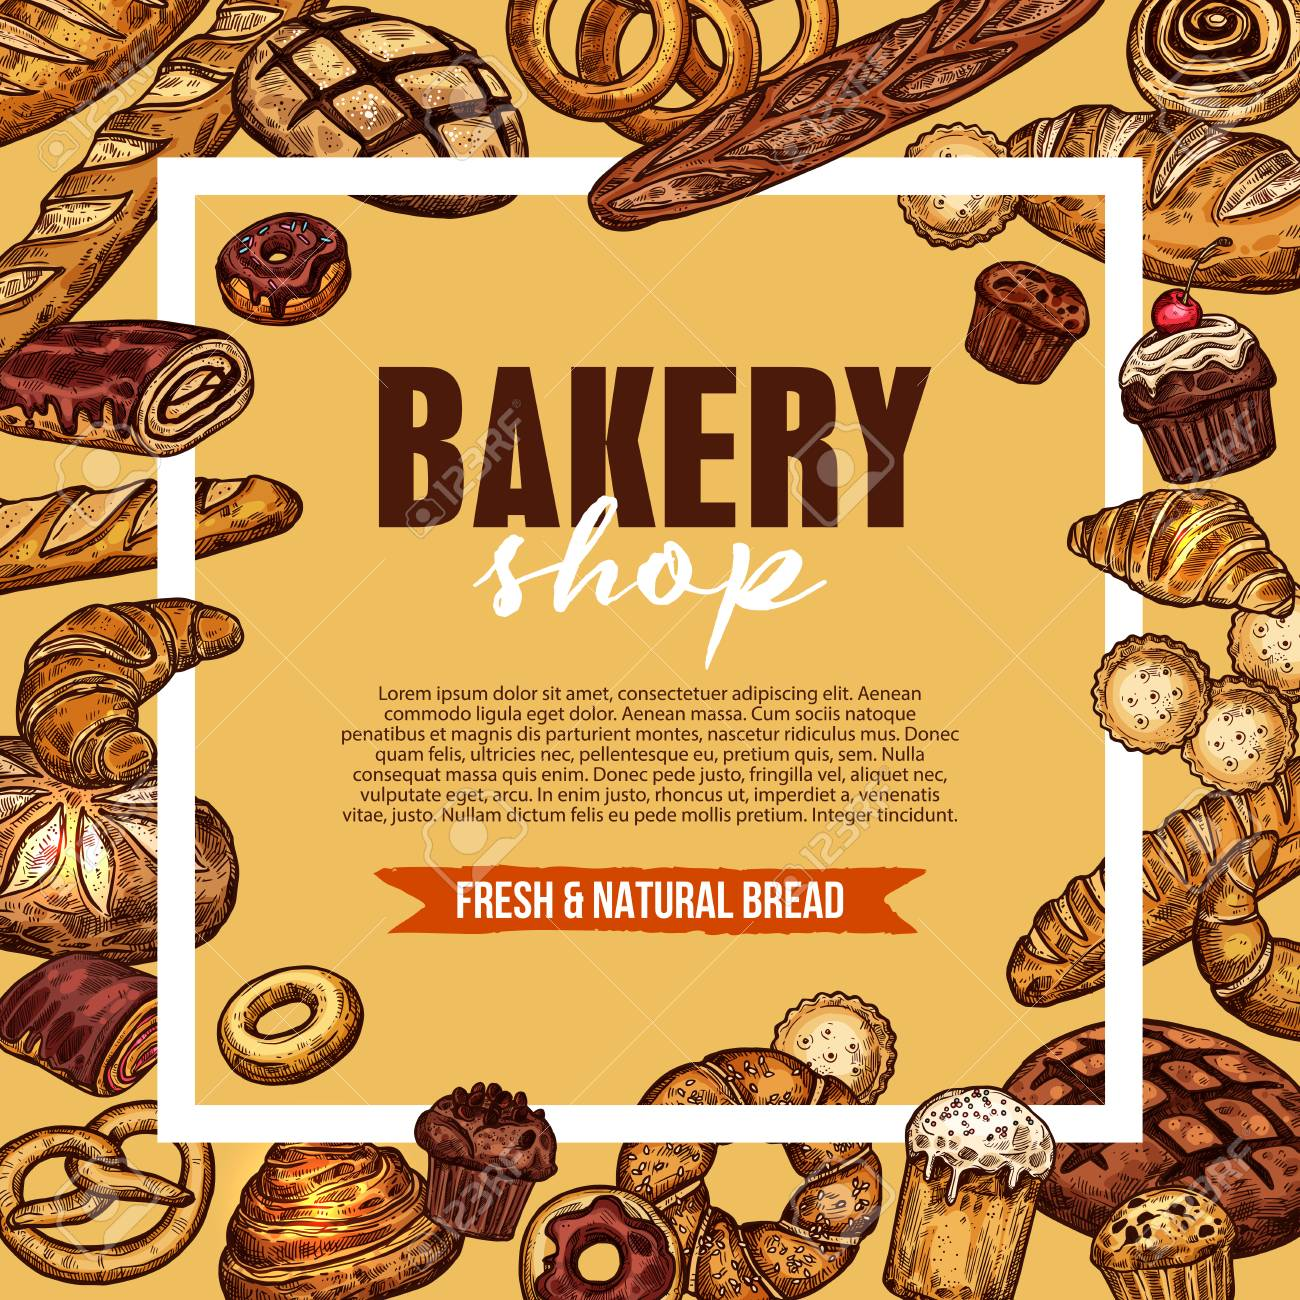 Bakery And Pastry Shop Poster With Fresh Baked Bread Long Loaf Royalty Free Cliparts Vectors And Stock Illustration Image 112276093